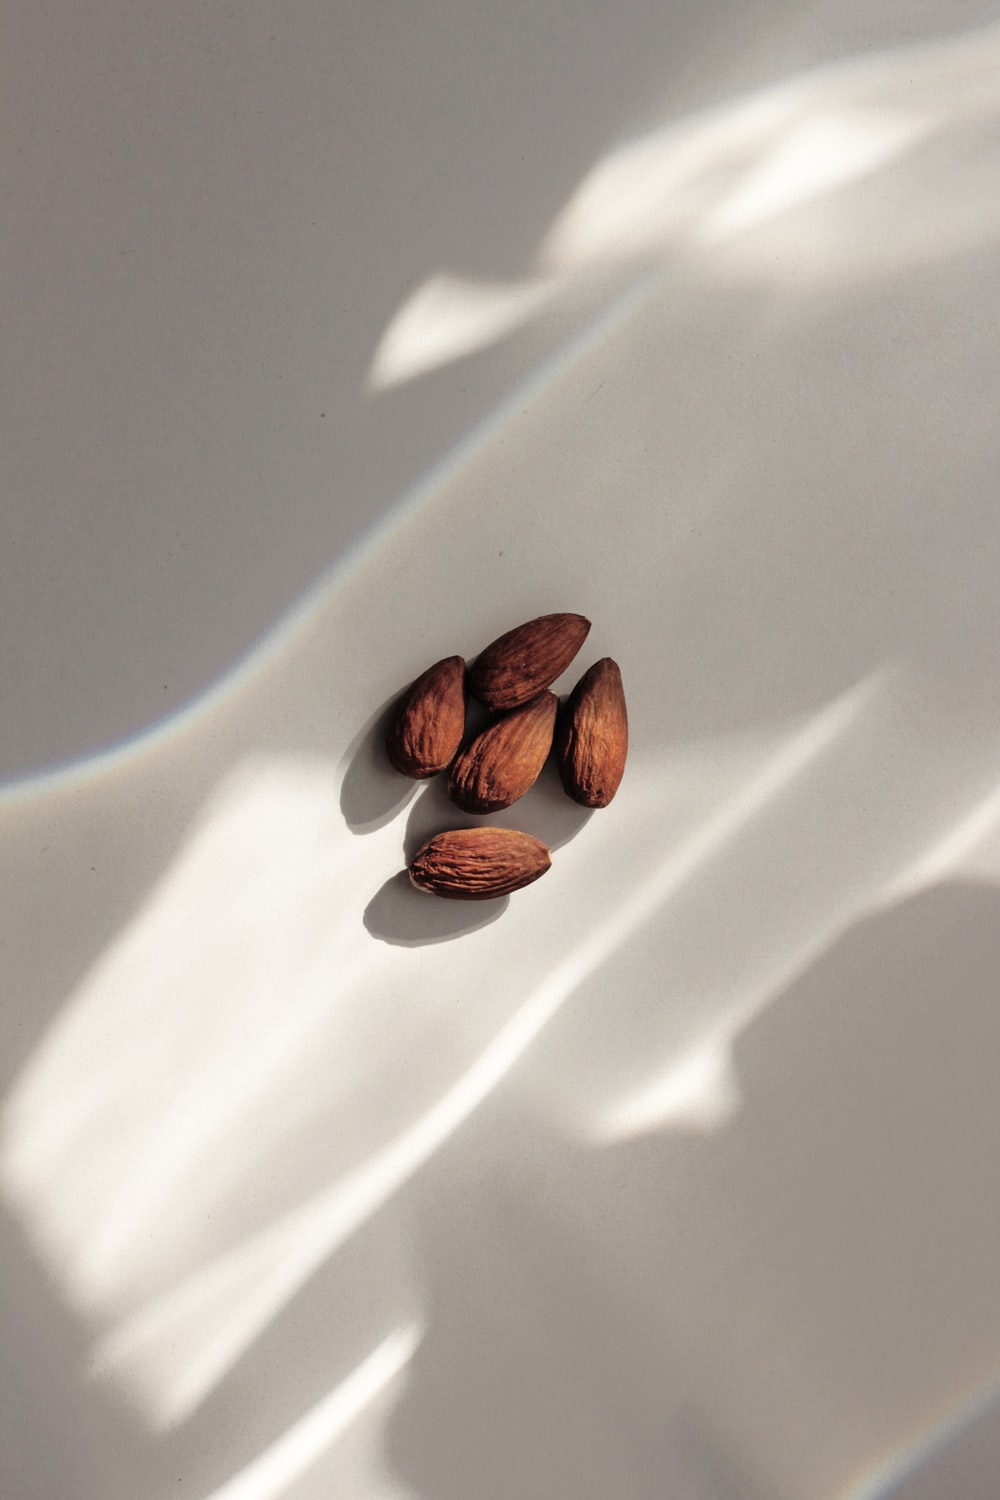 close-up of almond nuts on white surface